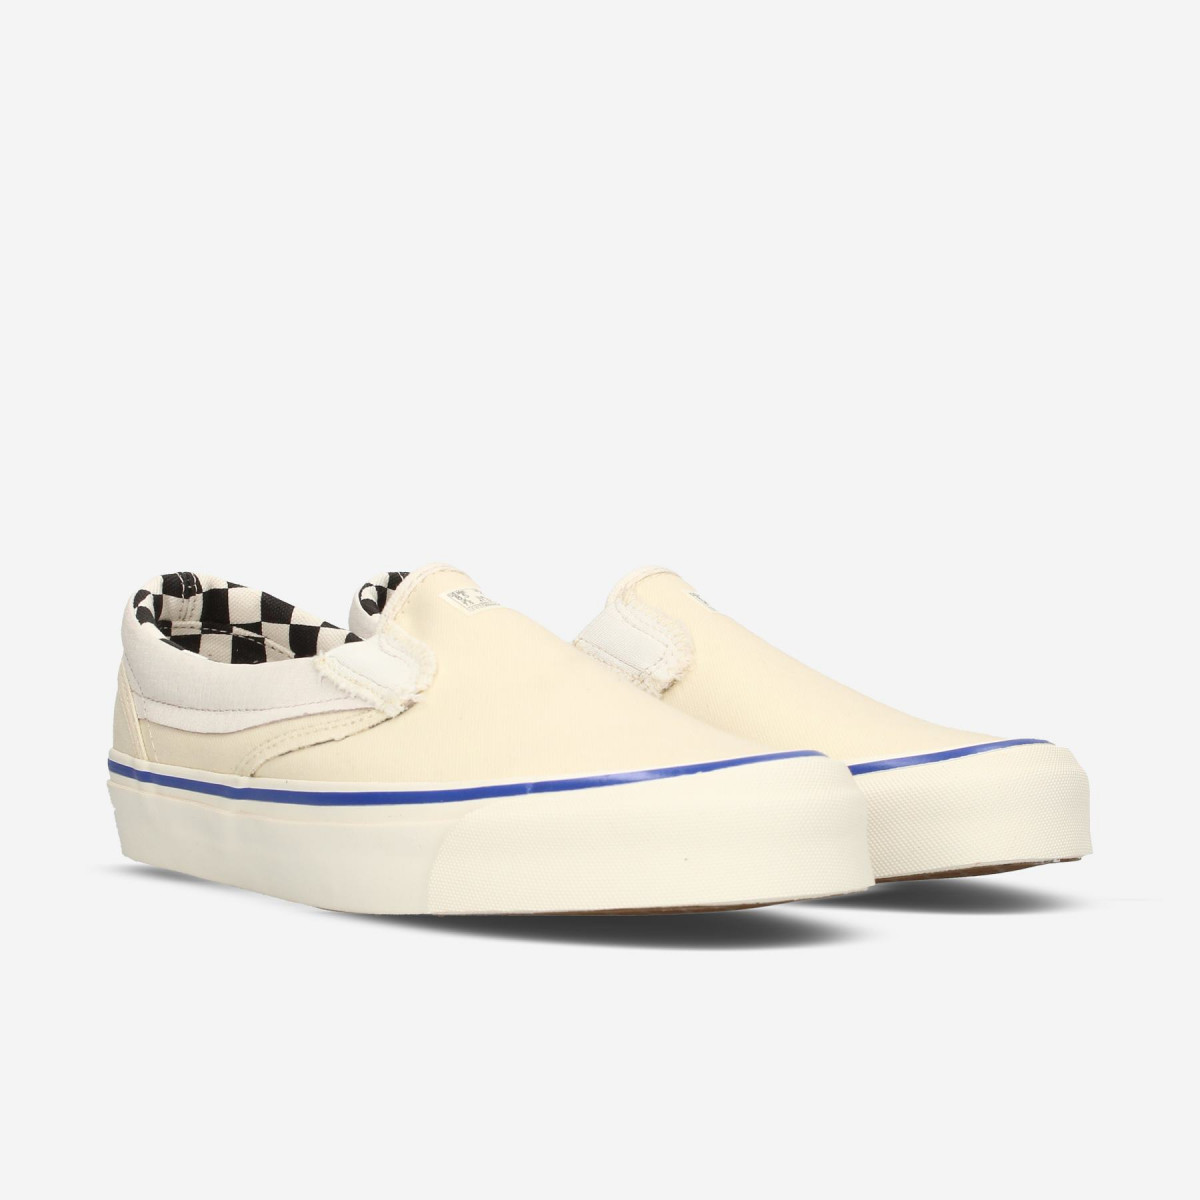 Vans Classic Slip-On Inside Out